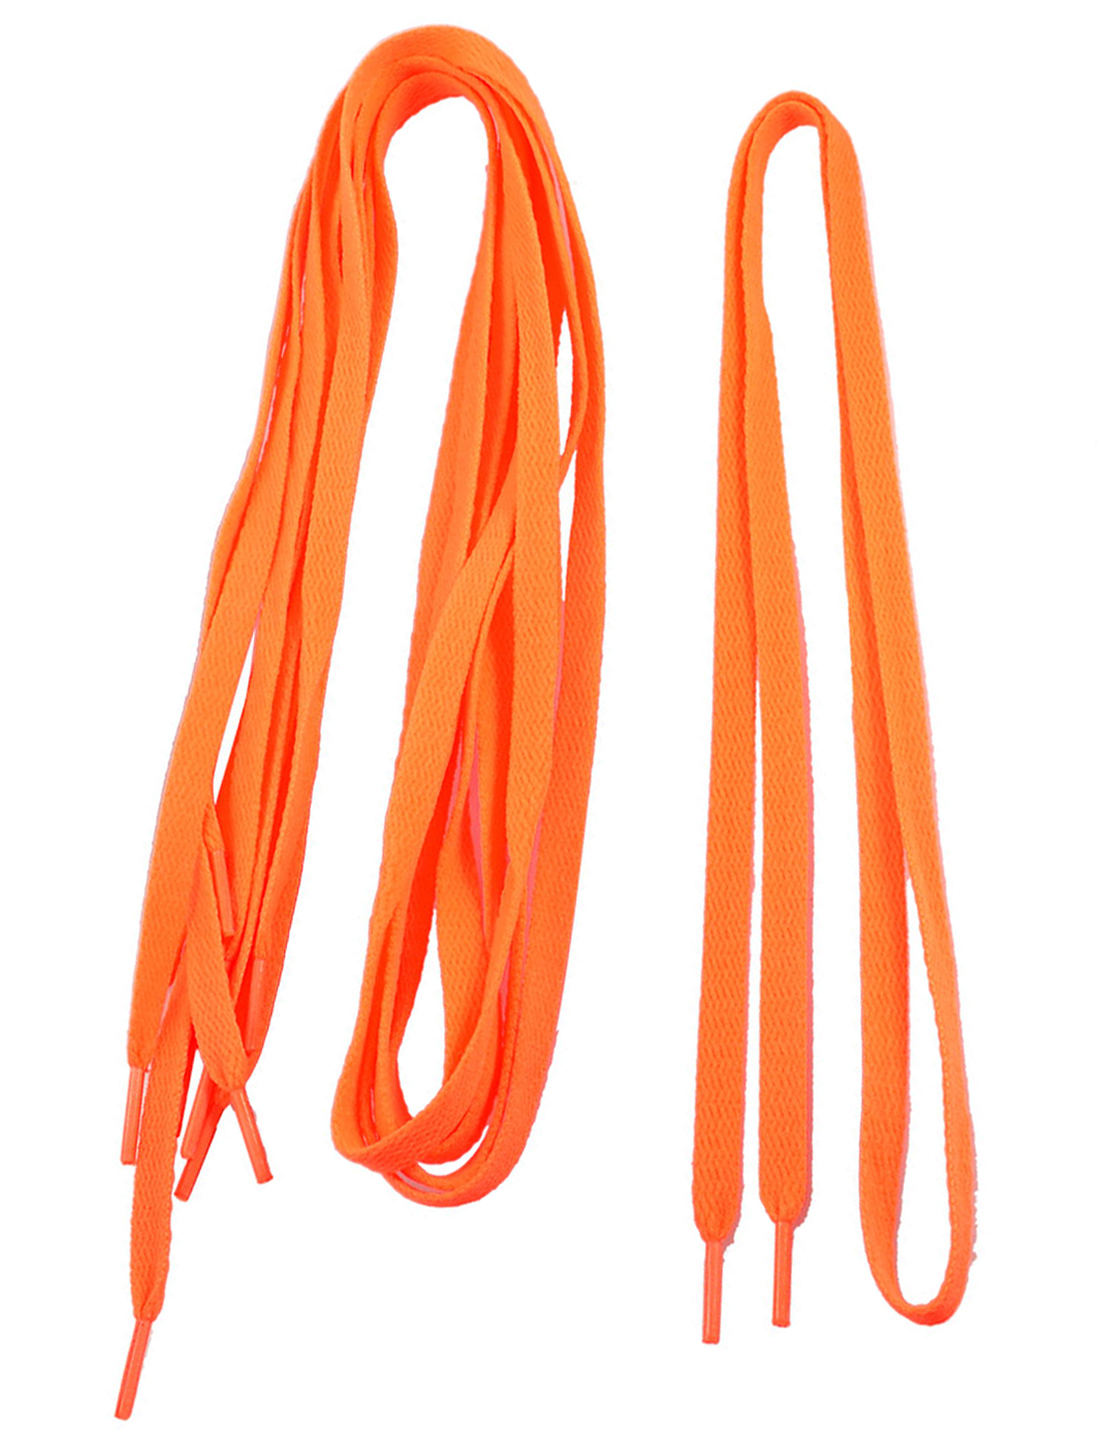 "Lady Plastic Tips 41.7"" Long Cord String Orange Flat Shoelaces 3 Pairs"